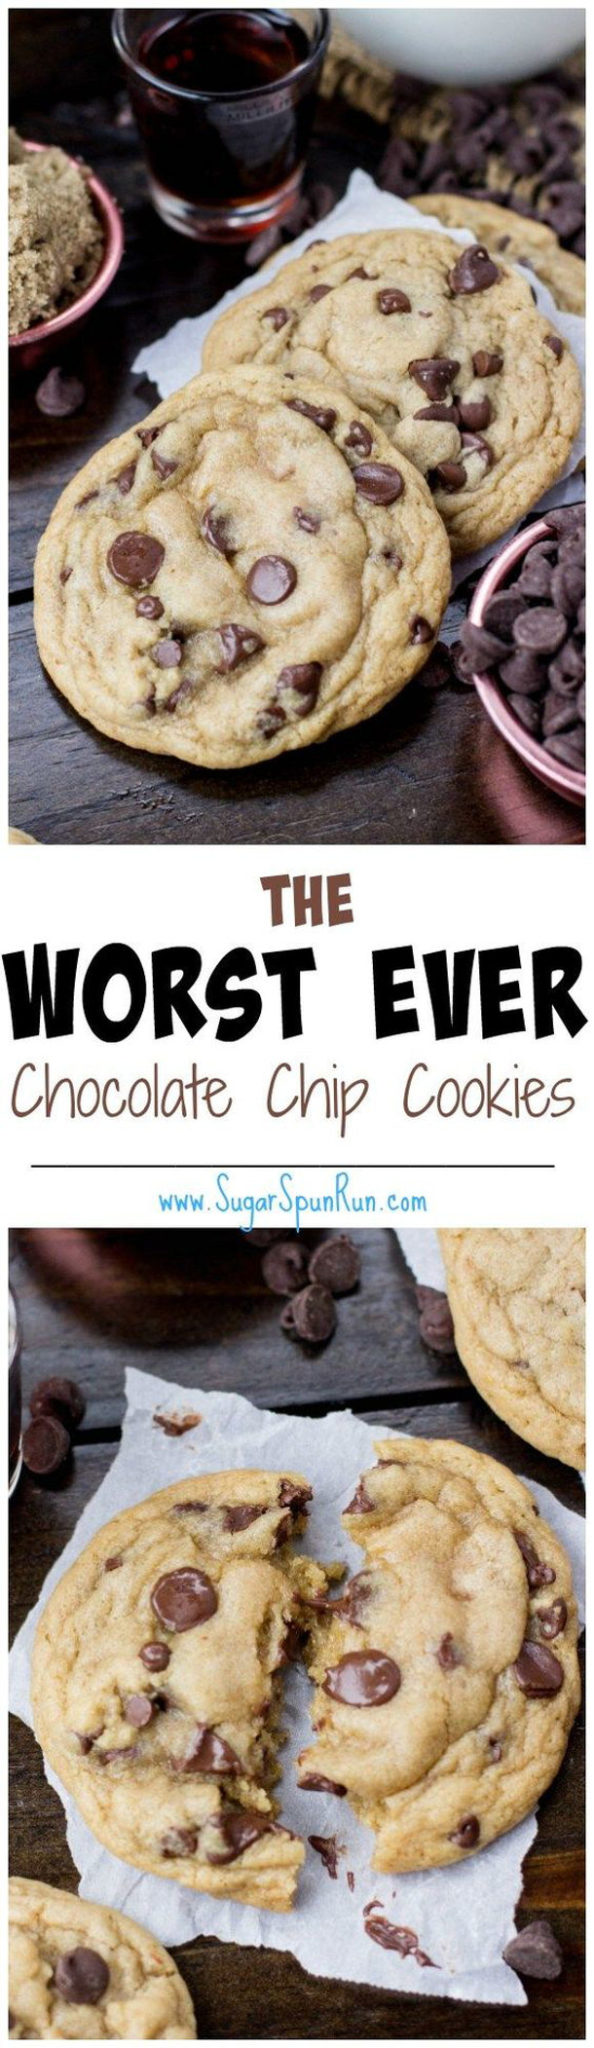 The Worst Ever Chocolate Chip Cookies Recipe via Sugar Spun Run #chocolatechipcookies #chocolatechip #chocolatechiptreats #chocolatechipdesserts #chocolatechiprecipes